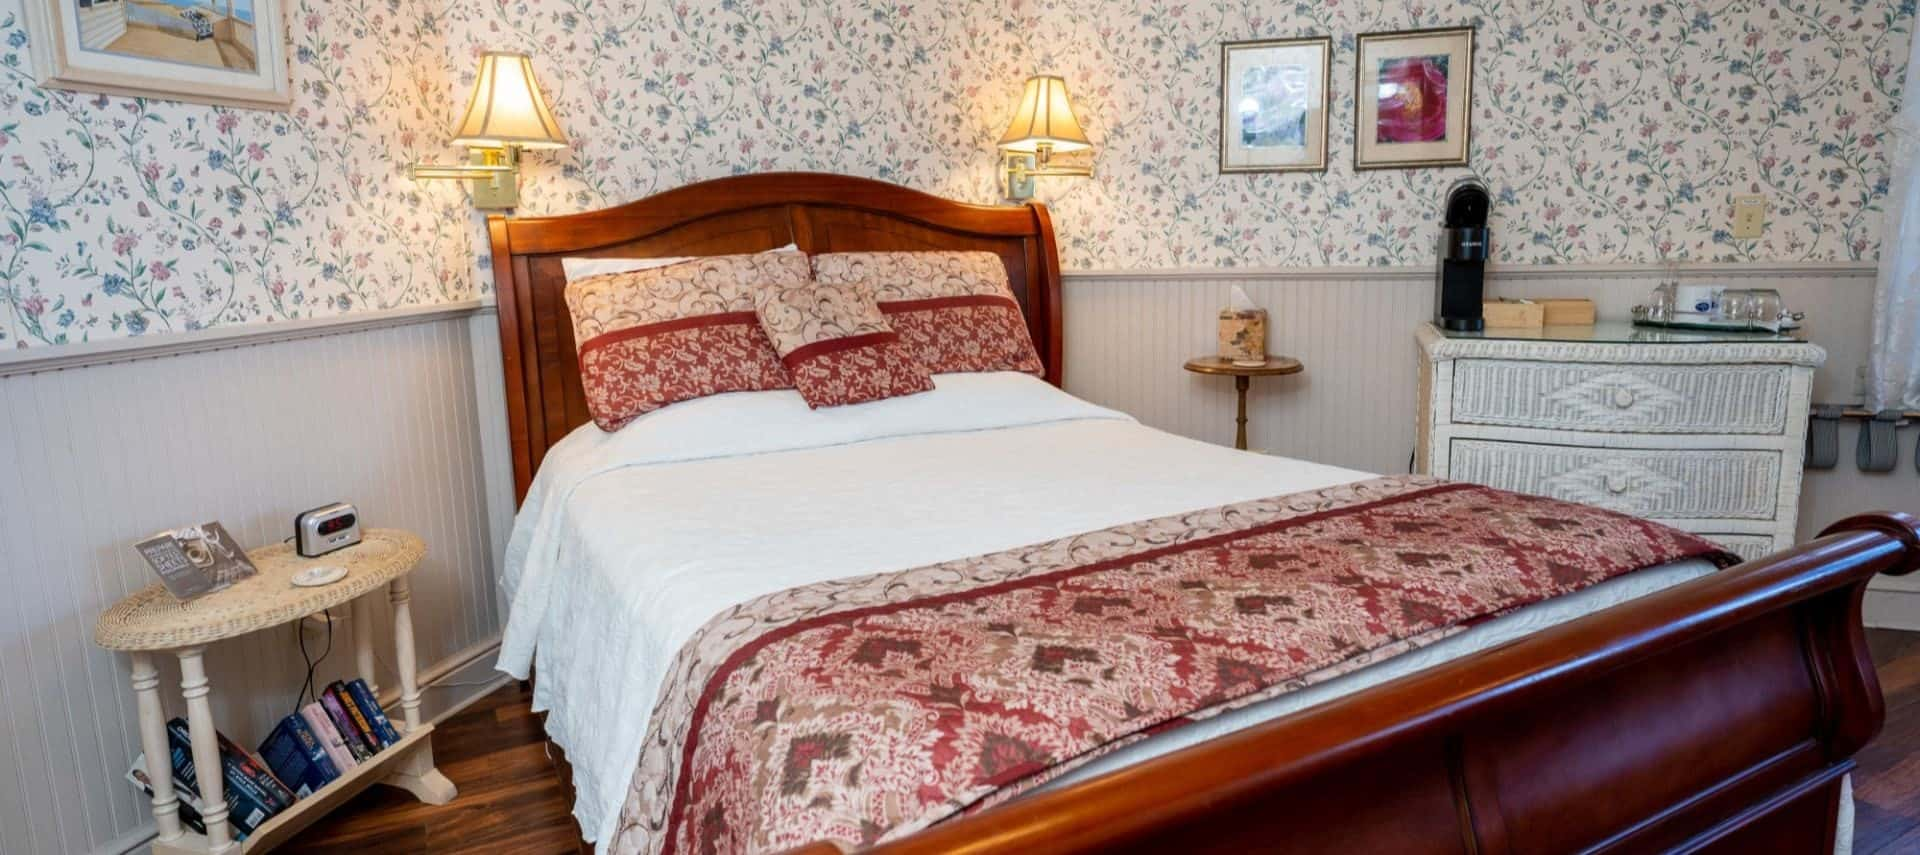 Bedroom with floral wallpaper, white wainscoting, hardwood flooring, wooden sleigh bed with white and red bedding, and white wicker dresser